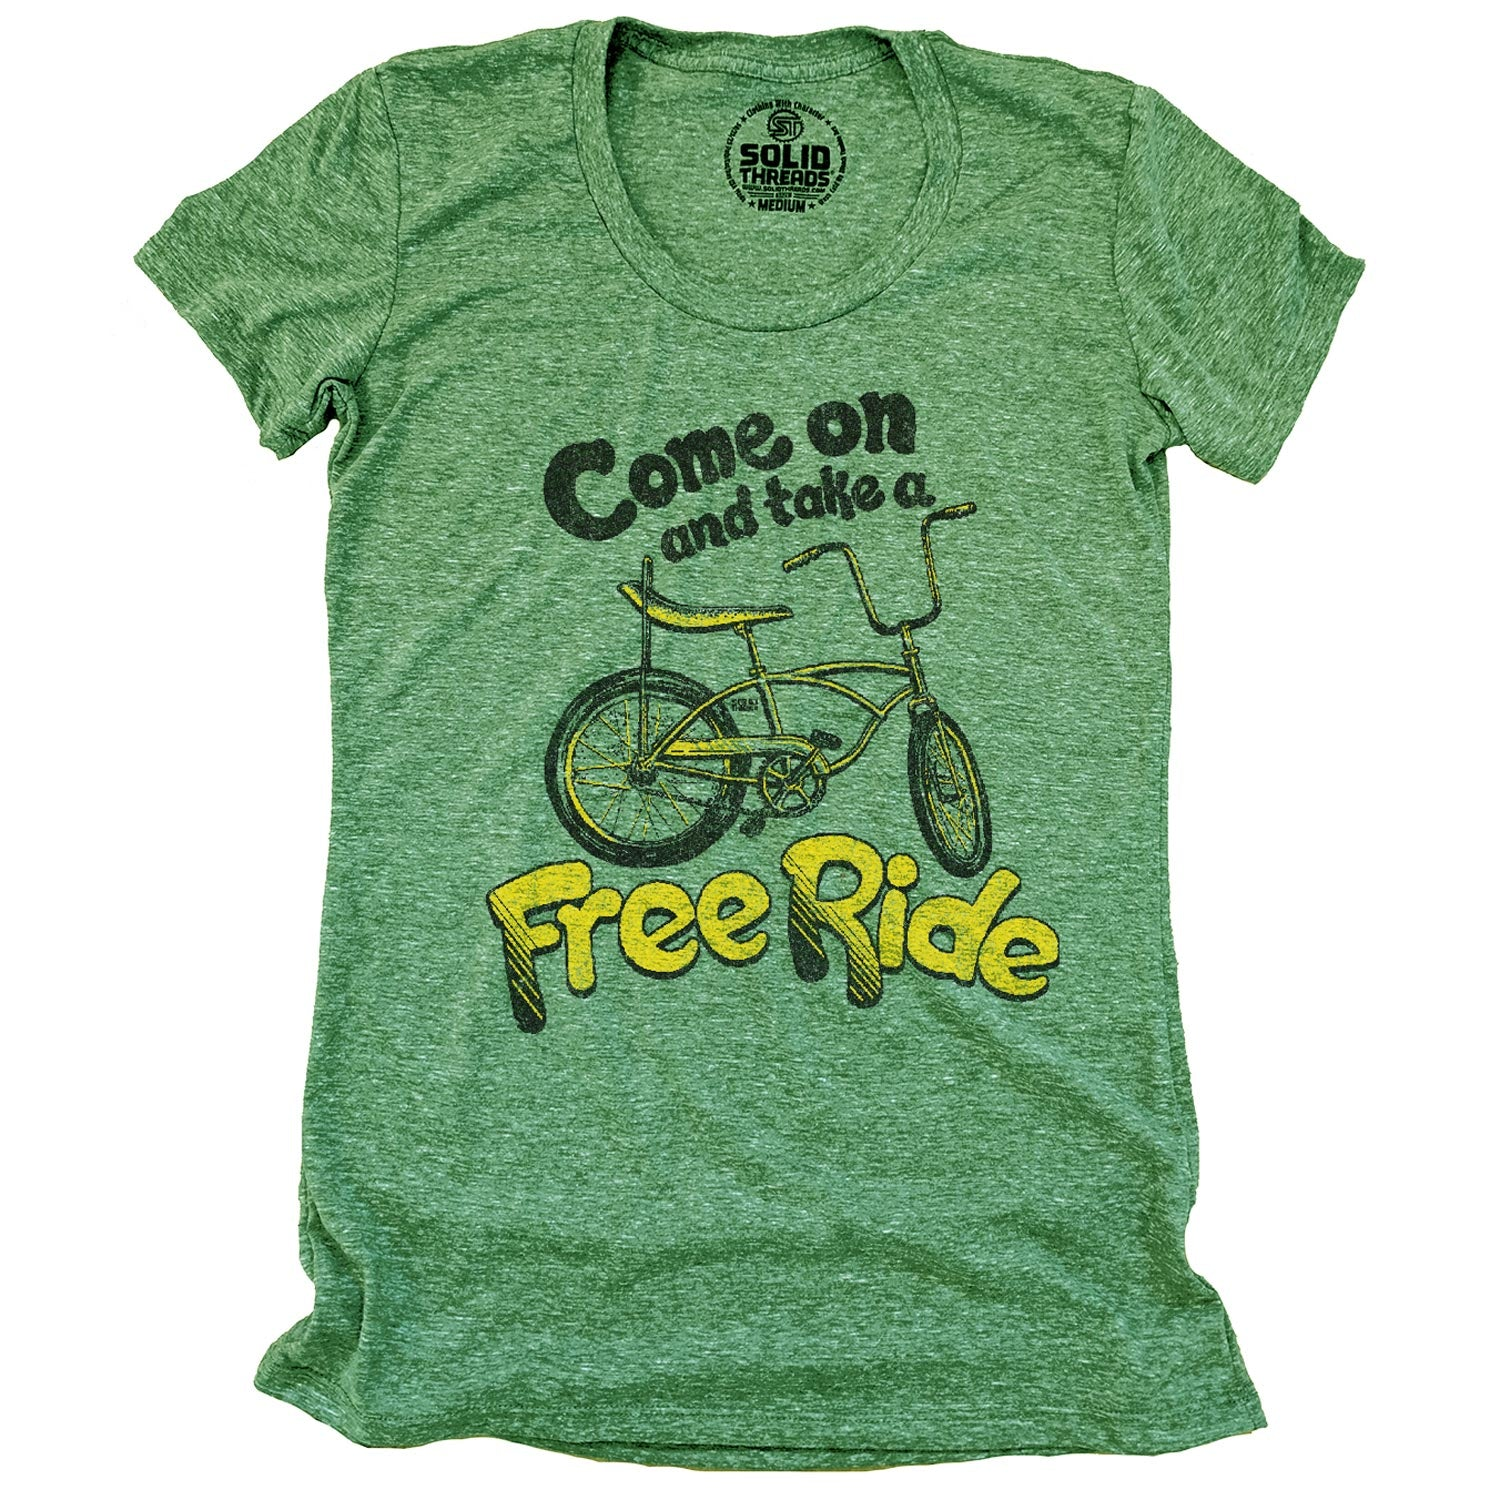 Women's Come On and Take a Free Ride Vintage Inspired T-shirt | Retro Bicycle Graphic Tee | Solid Threads